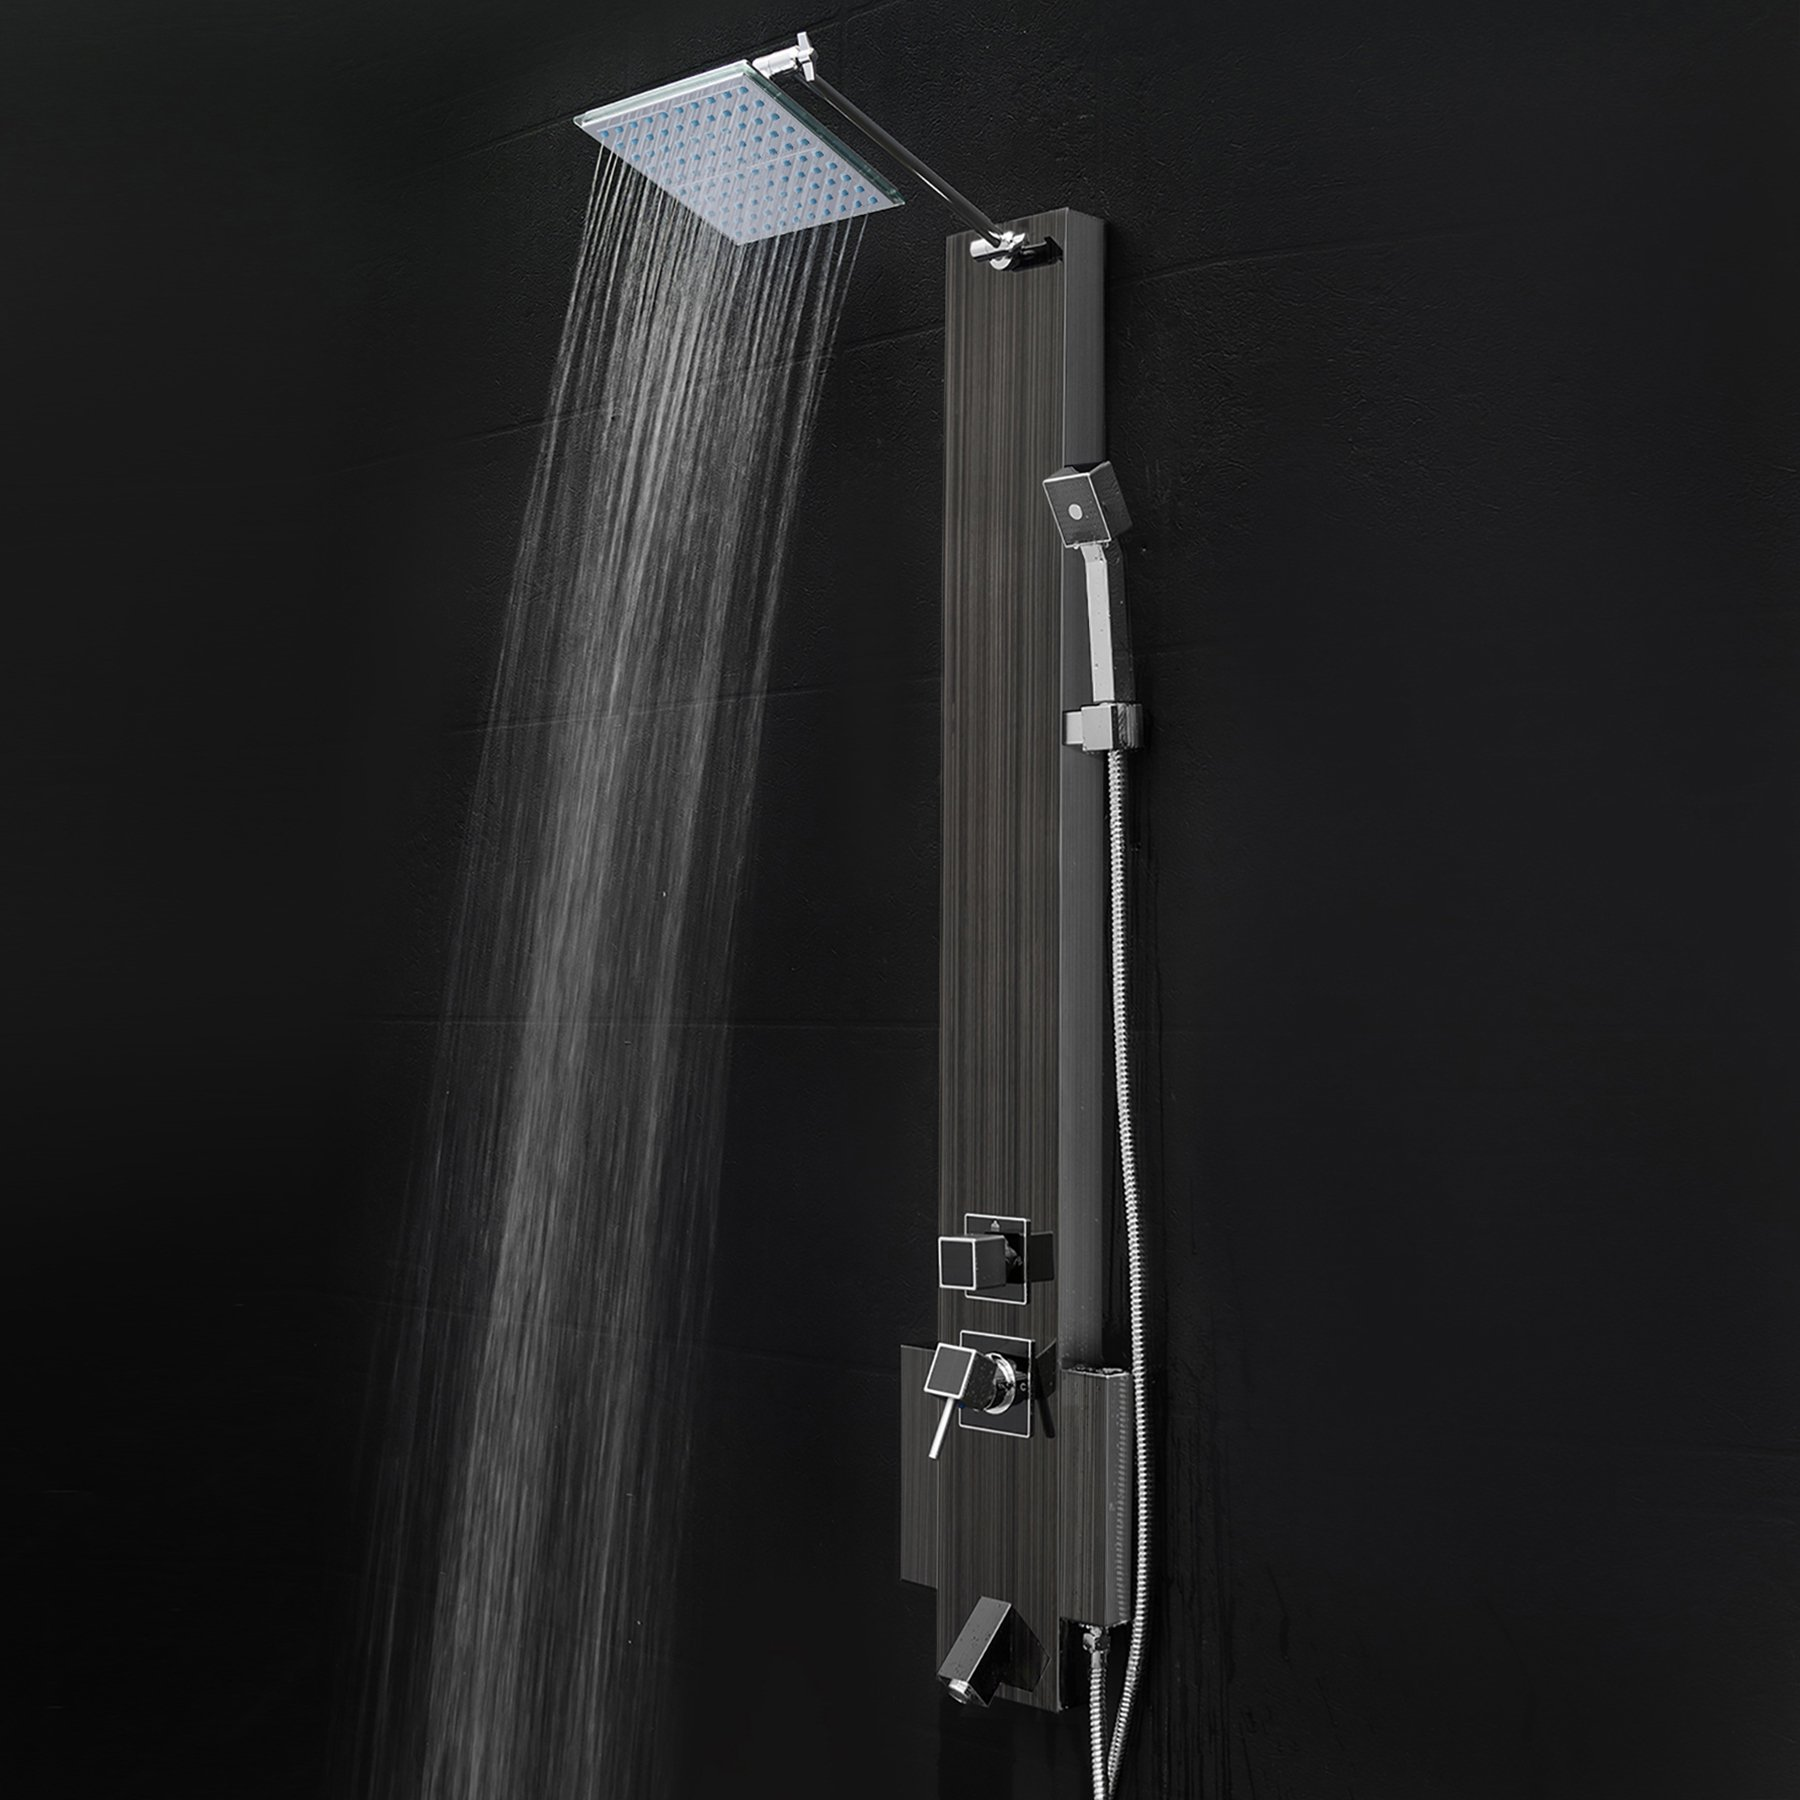 FIREBIRD 48'' Black Stainless Steel Shower Panel Tower with Rainfall Shower Head and Spout